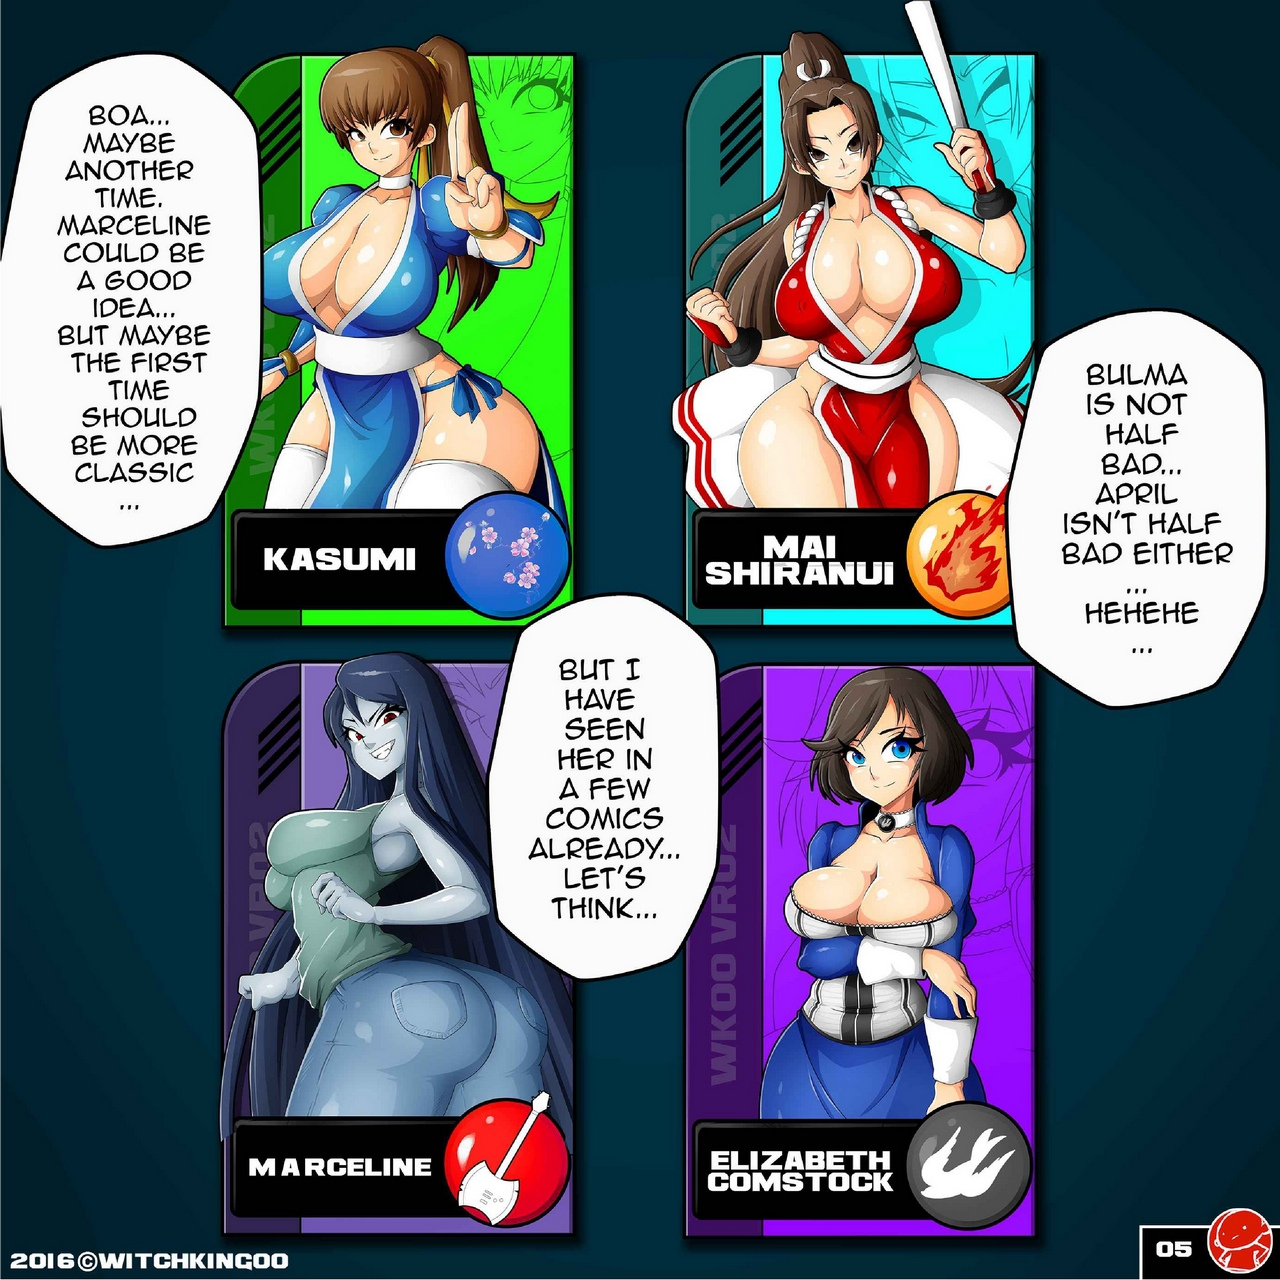 VR-The-Comic-2 5 free sex comic